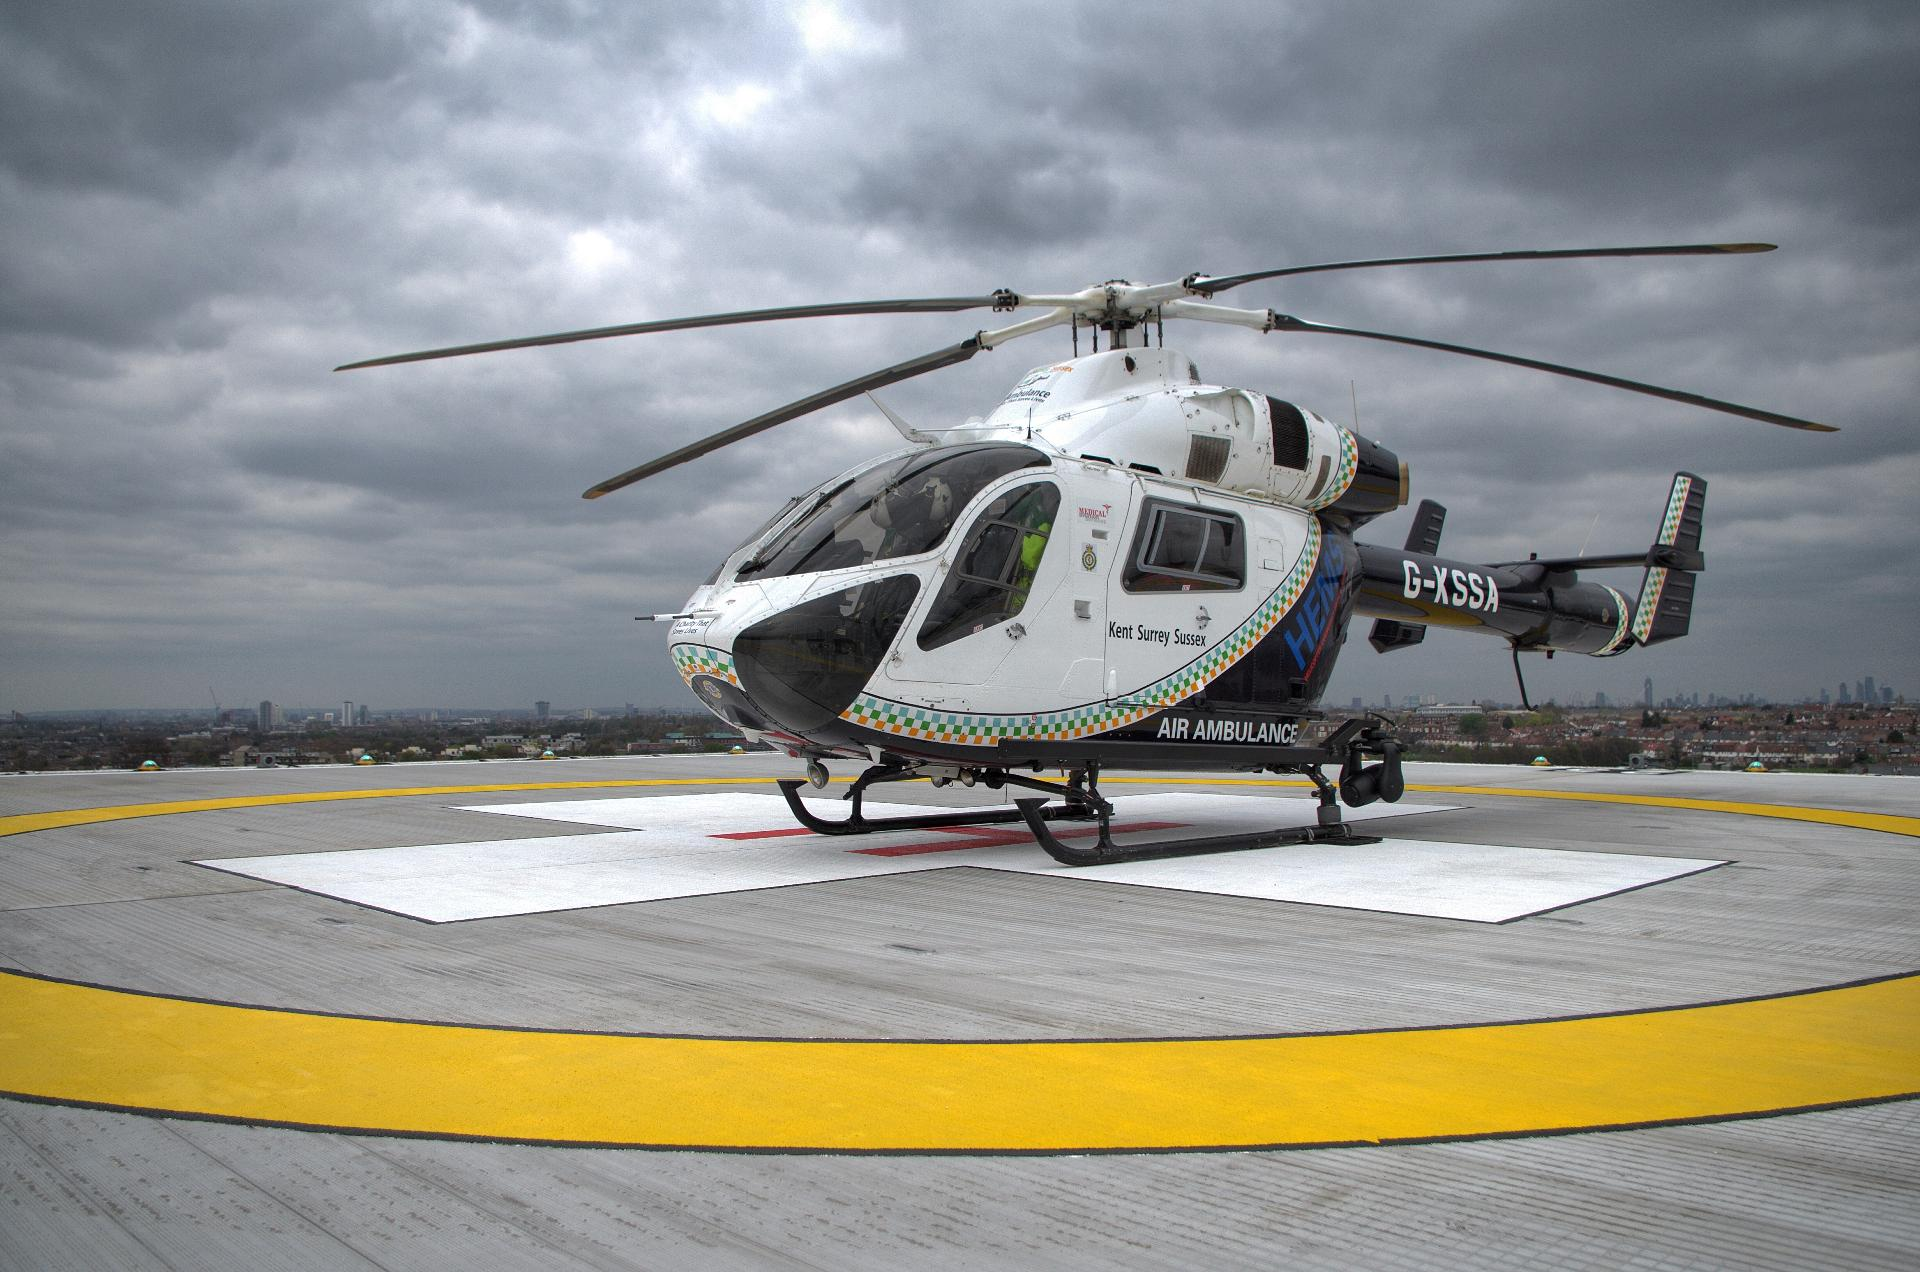 Helicopter on helipad | St George's Healthcare attachment